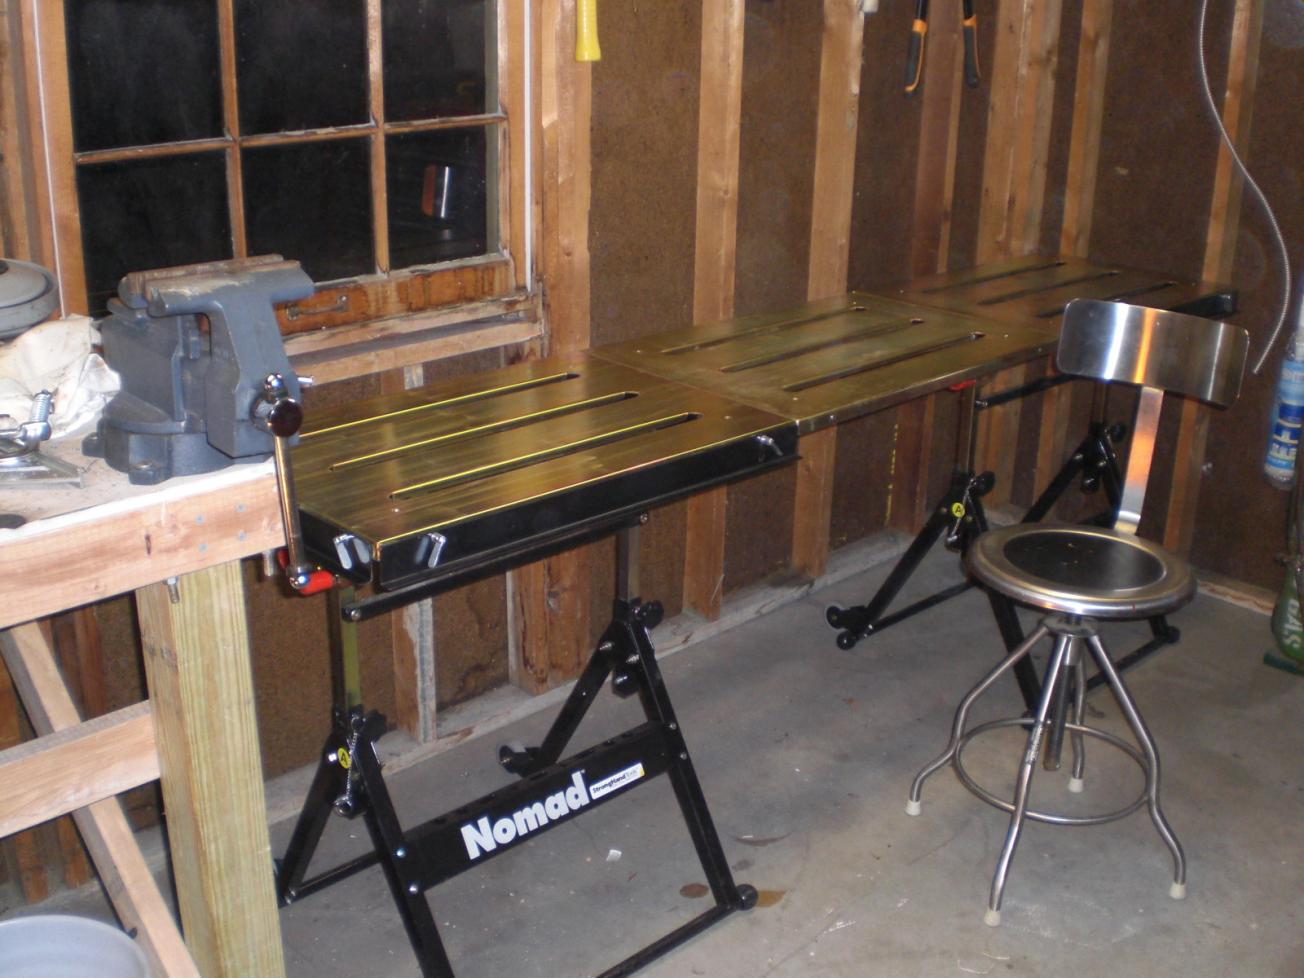 Project 1 Strong Hands Nomad Welding Table Assembly